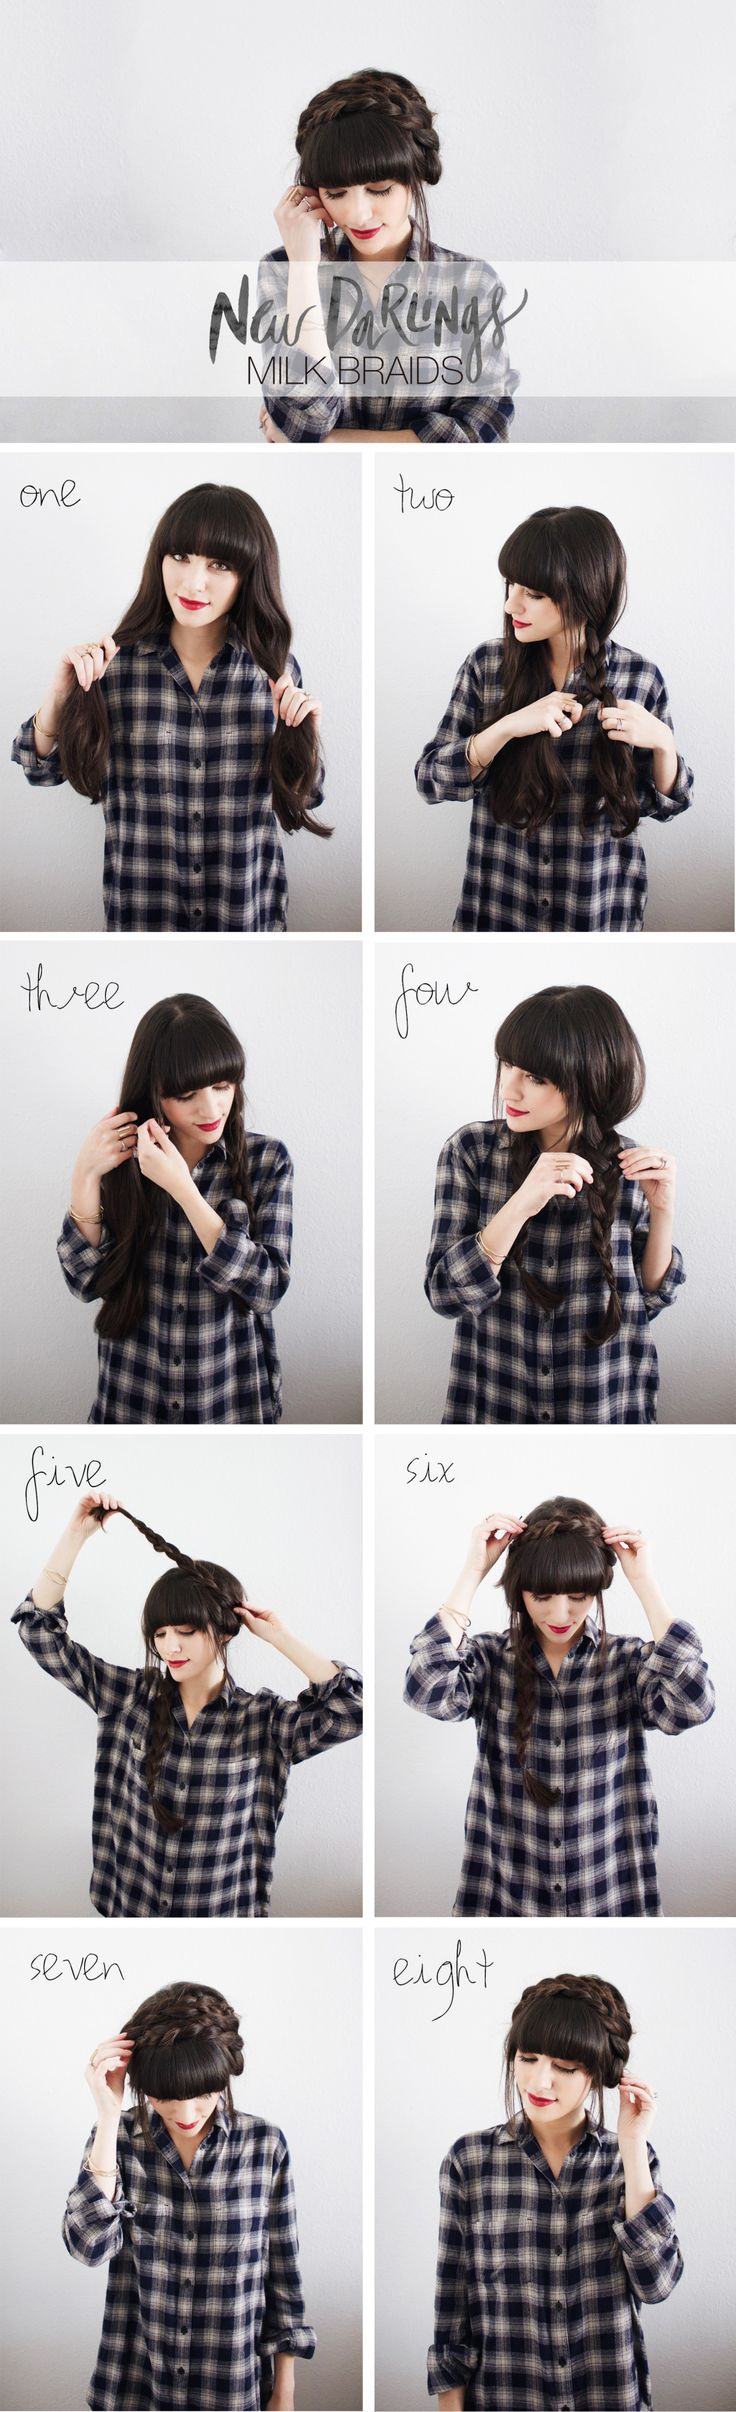 The model is showing how to make Stylish Milkmaid Braid.